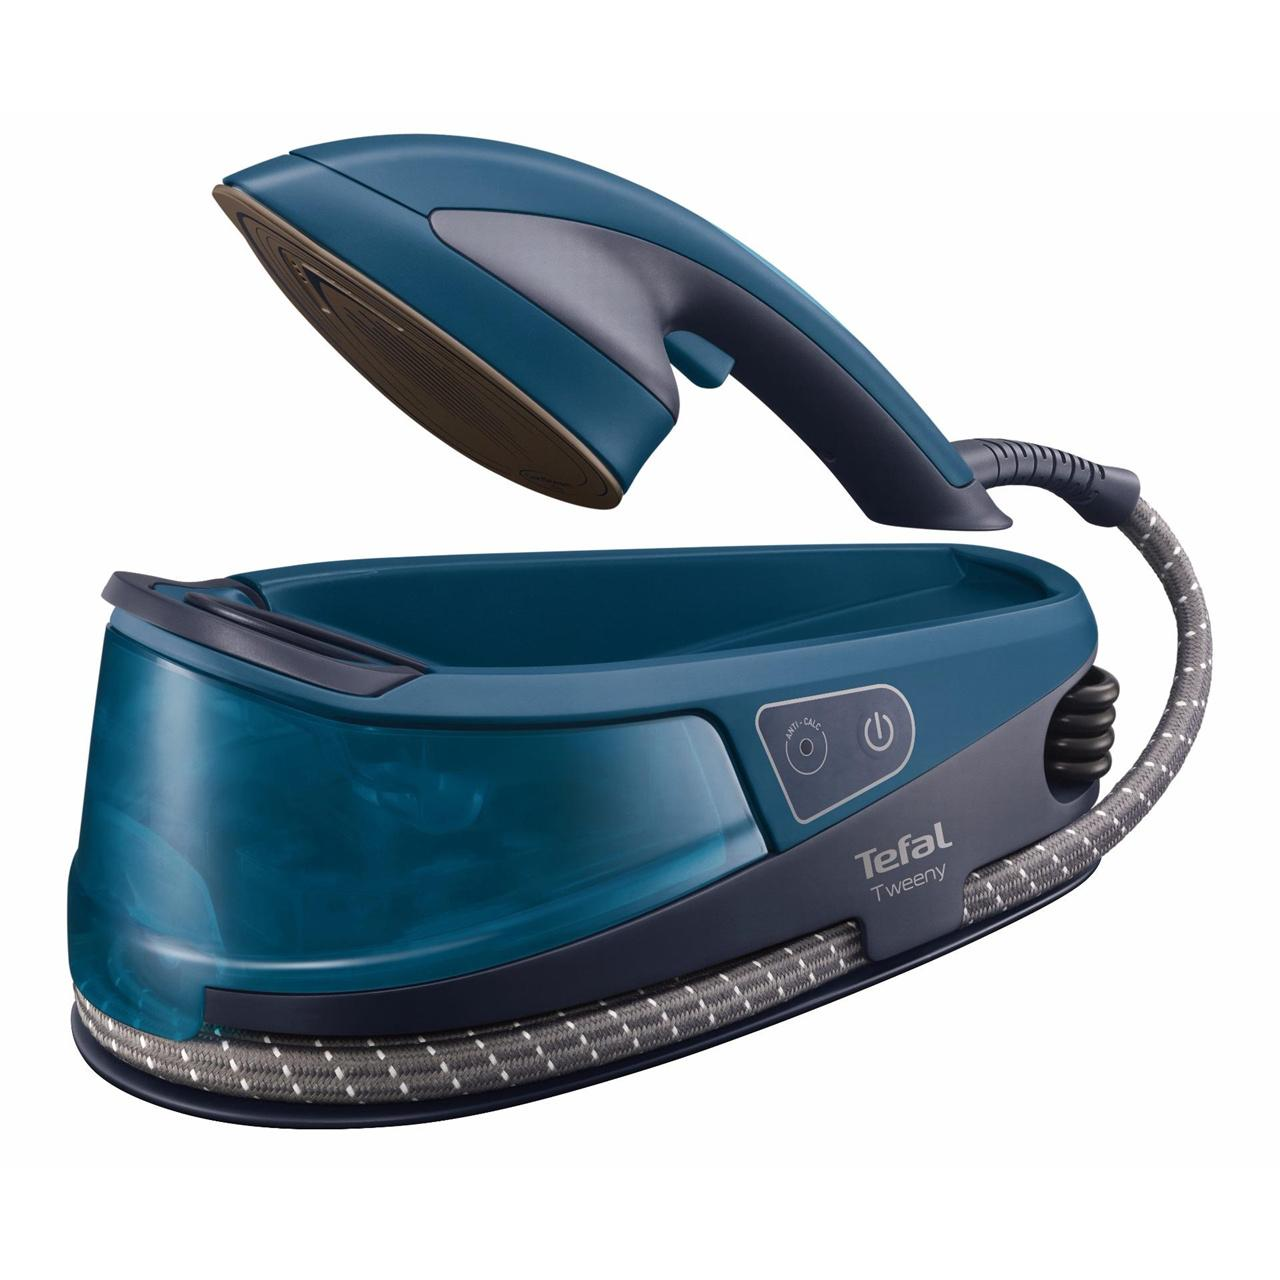 Tefal Ni5020 2-In-1 Tweeny Steam Iron And Garment Steamer By Fepl.